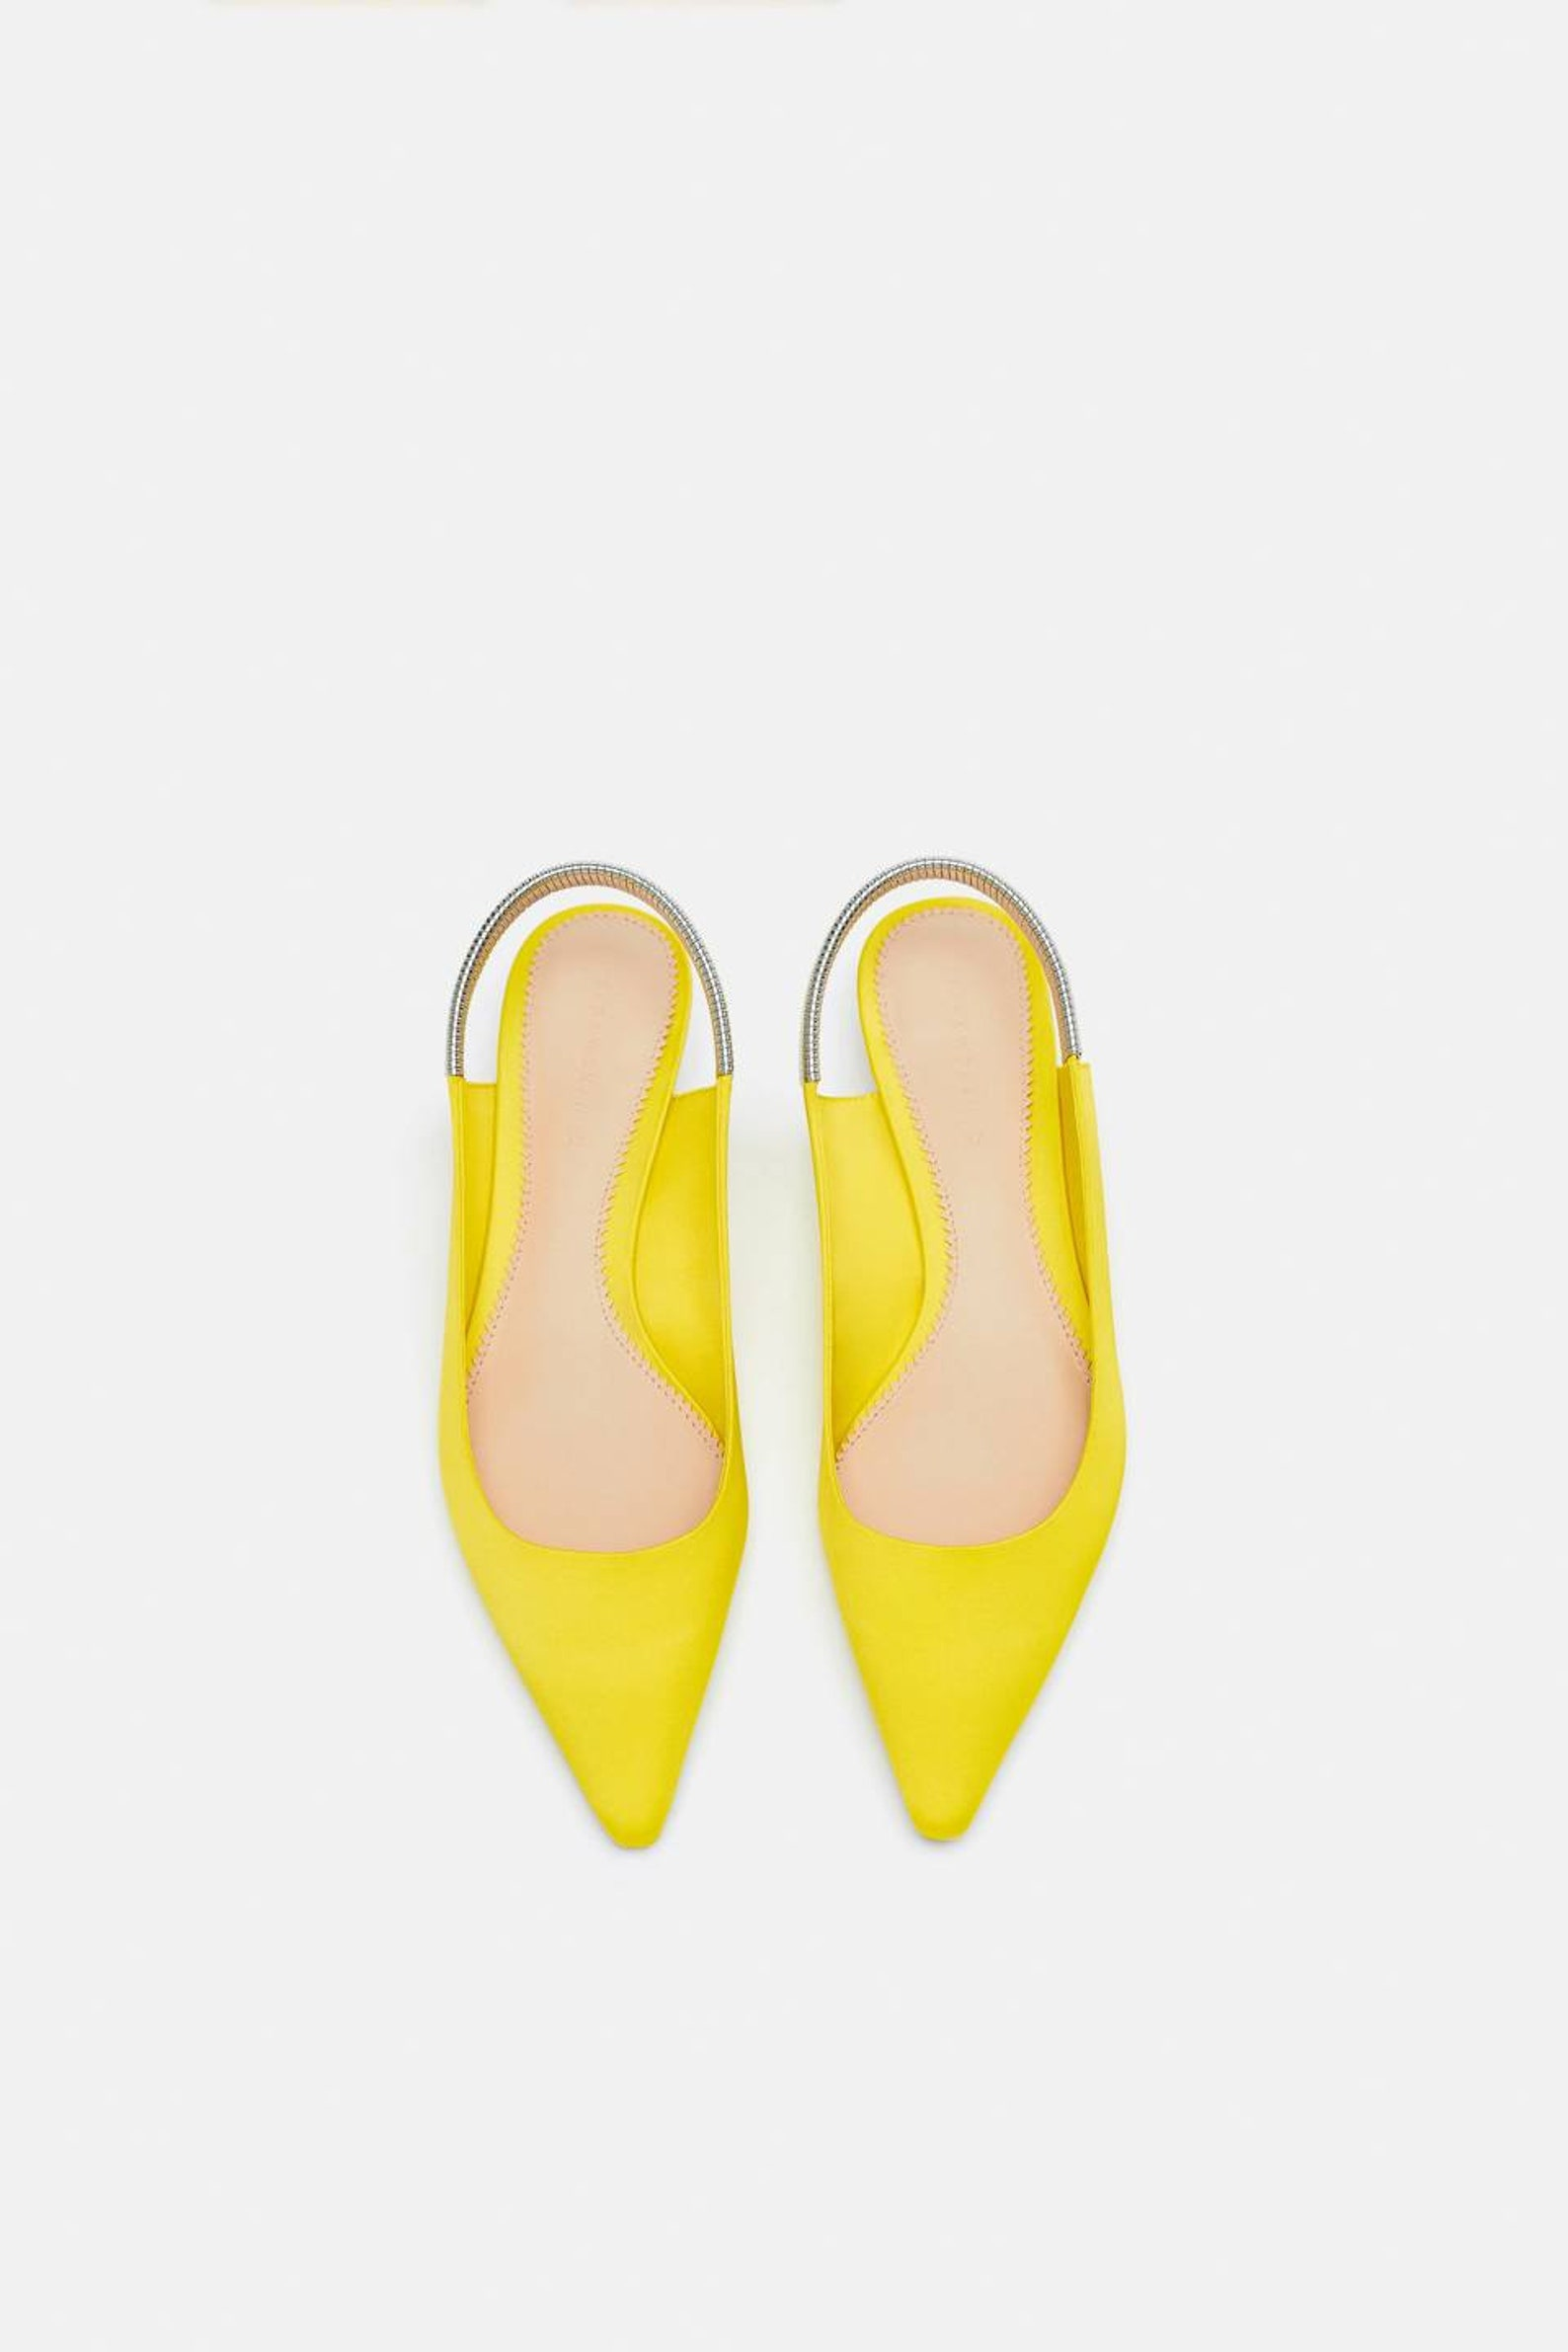 open babet shoes, yellow heel open ballet shoes. back with metallic mesh band. metallic heels.